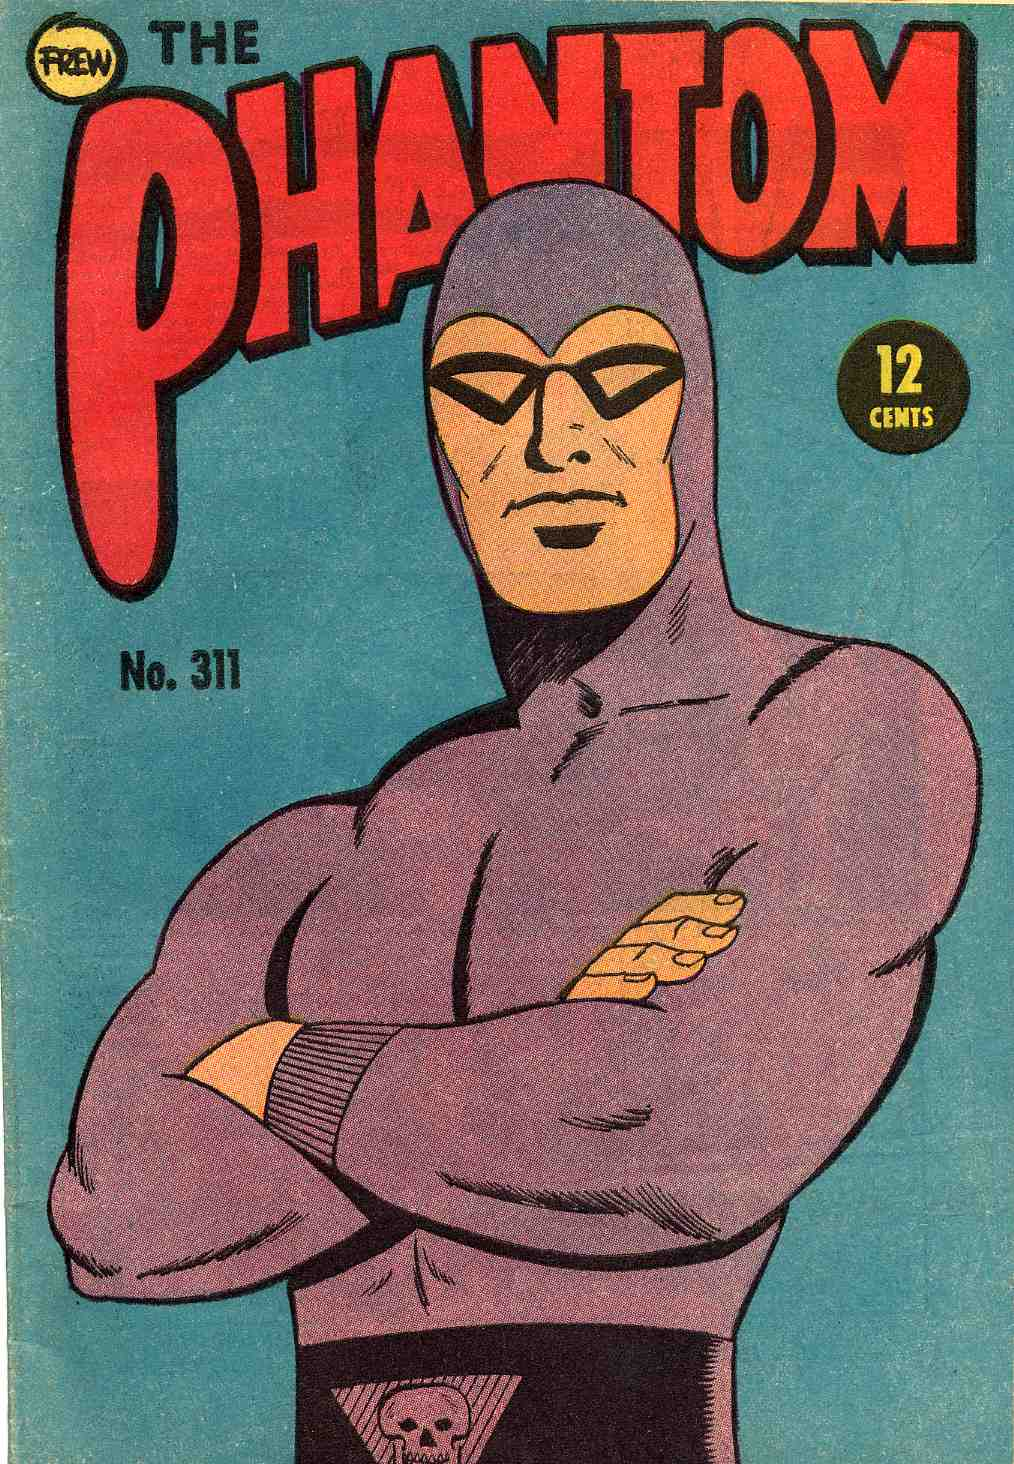 The Phantom Issue 311 published in Australia by Frew Publications, the longest running publisher of The Phantom comic.